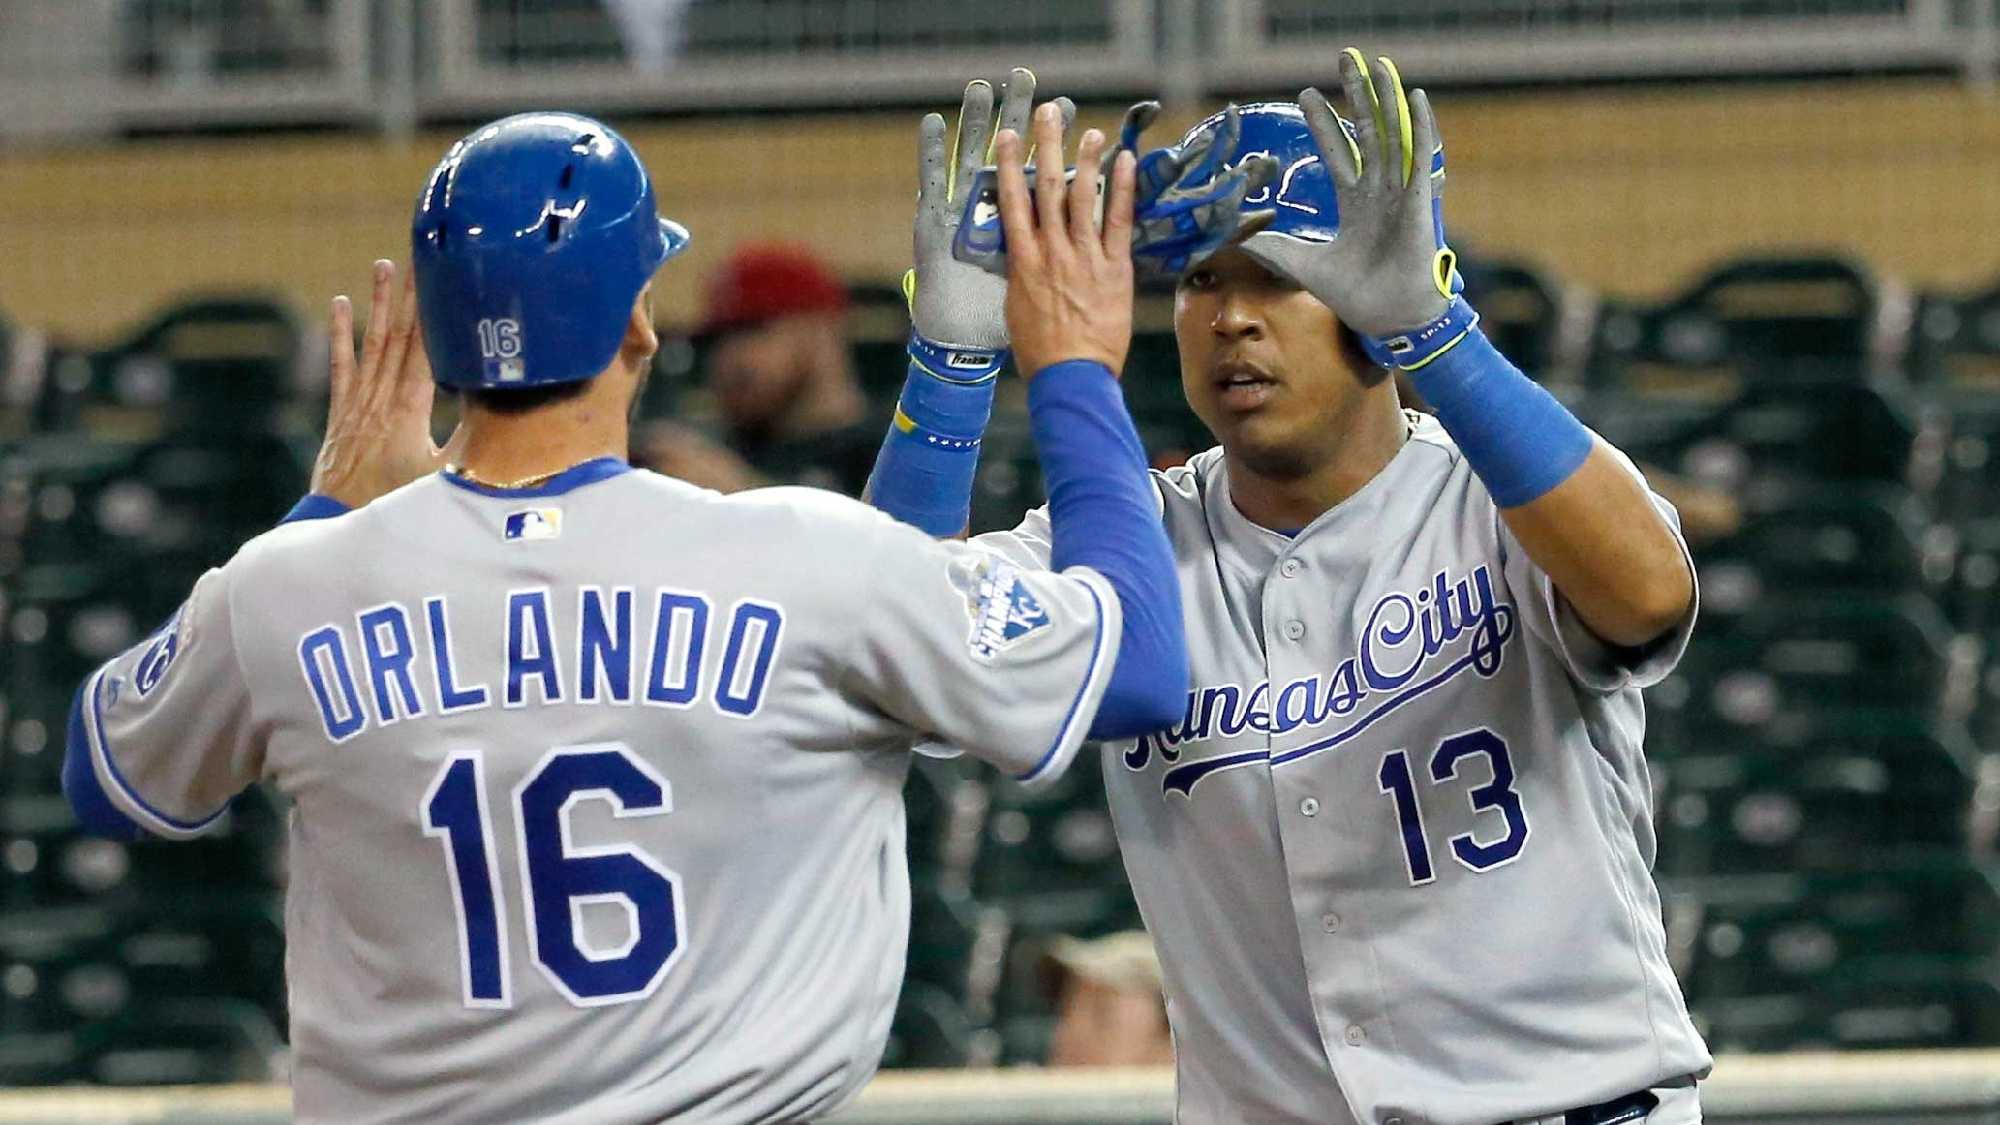 Kansas City Royals' Salvador Perez (13) and Paulo Orlando (16) celebrate after scoring on two-run double by teammate Omar Infante off Minnesota Twins closing pitcher Kevin Jepsen during the ninth inning of a baseball game in Minneapolis, Monday, May 23, 2016. The Royals won 10-4. (AP Photo/Ann Heisenfelt)